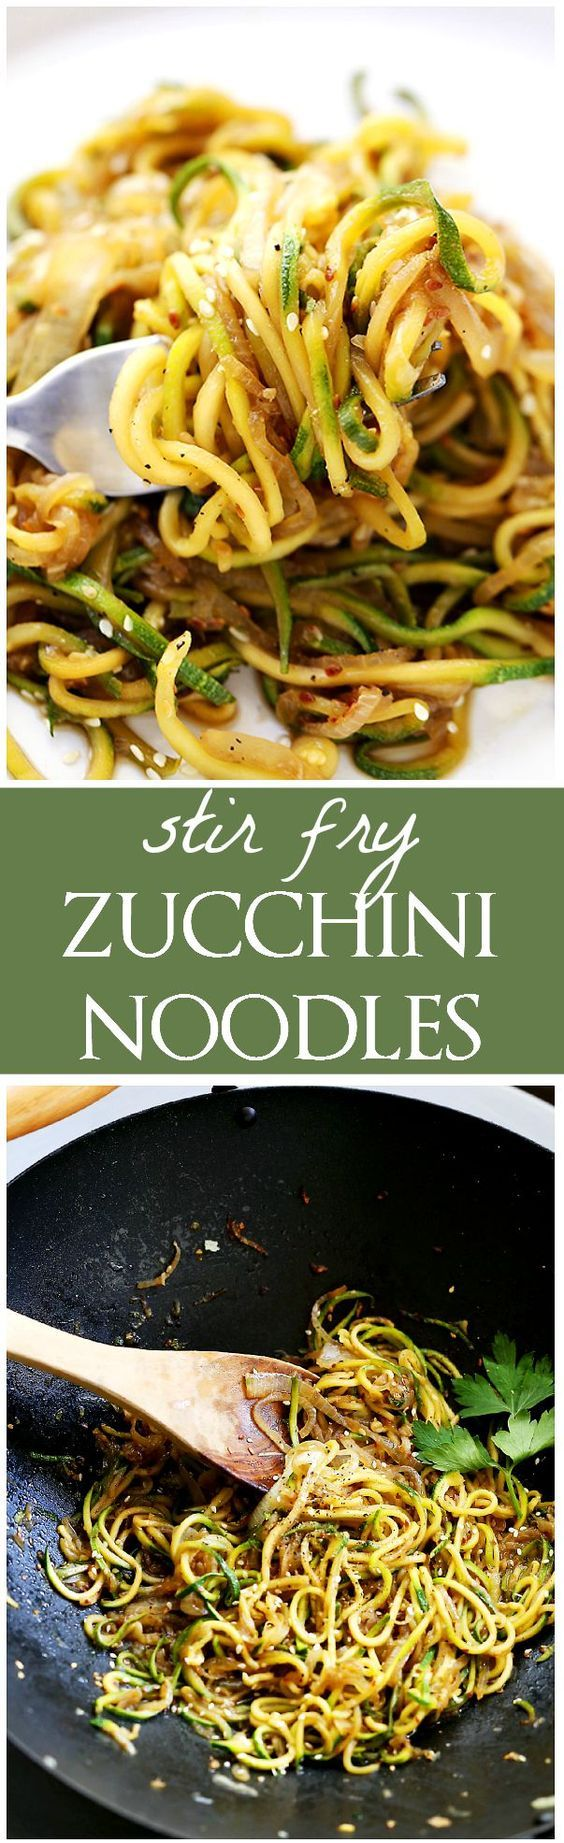 Stir Fry Zucchini Noodles ~ A delicious, low-carb, healthy stir fry made with spiraled zucchini and onions tossed with teriyaki sauce and toasted sesame seeds! More